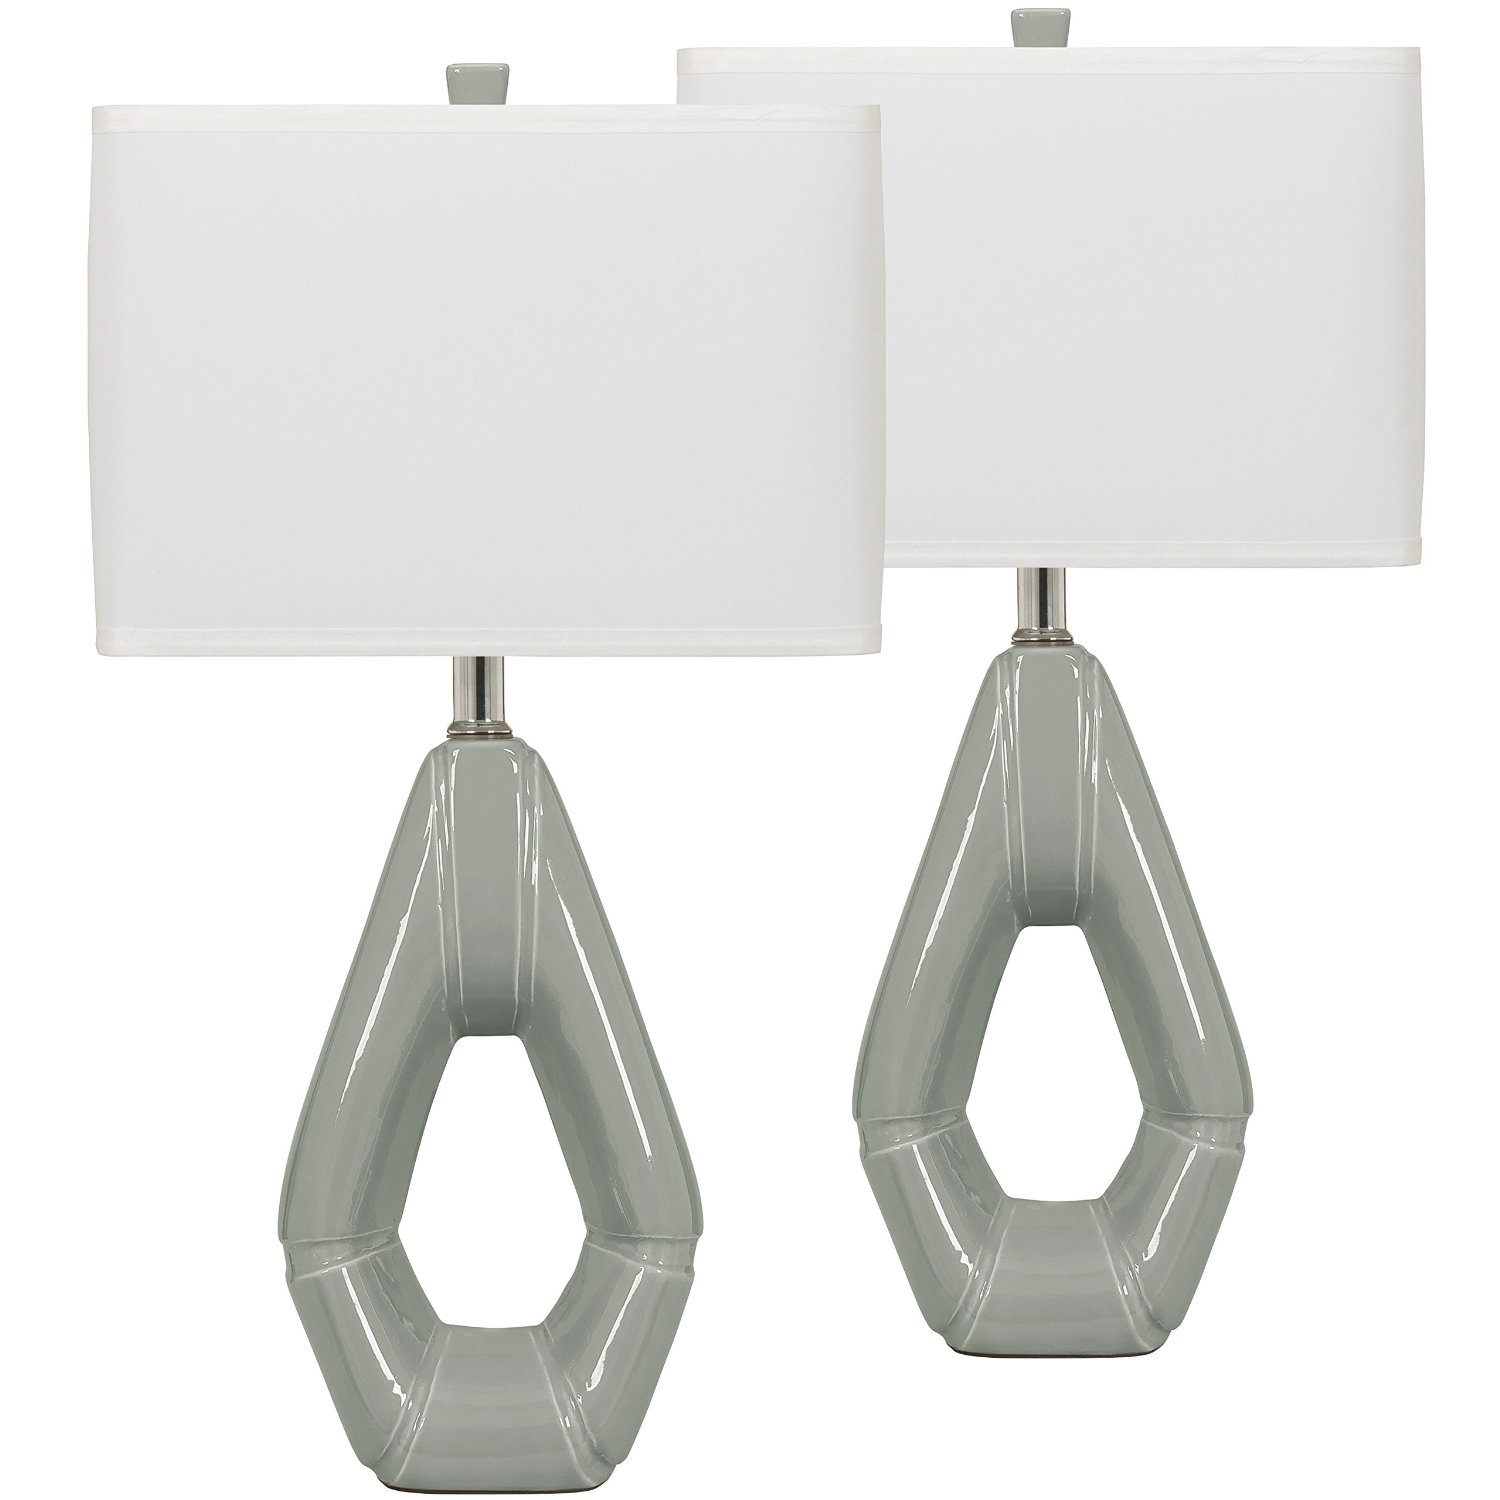 Inspiration about Modern Living Room Table Lamp Set Grey Ceramic Table Lamp Set Of 2 Pertaining To Set Of 2 Living Room Table Lamps (#13 of 15)